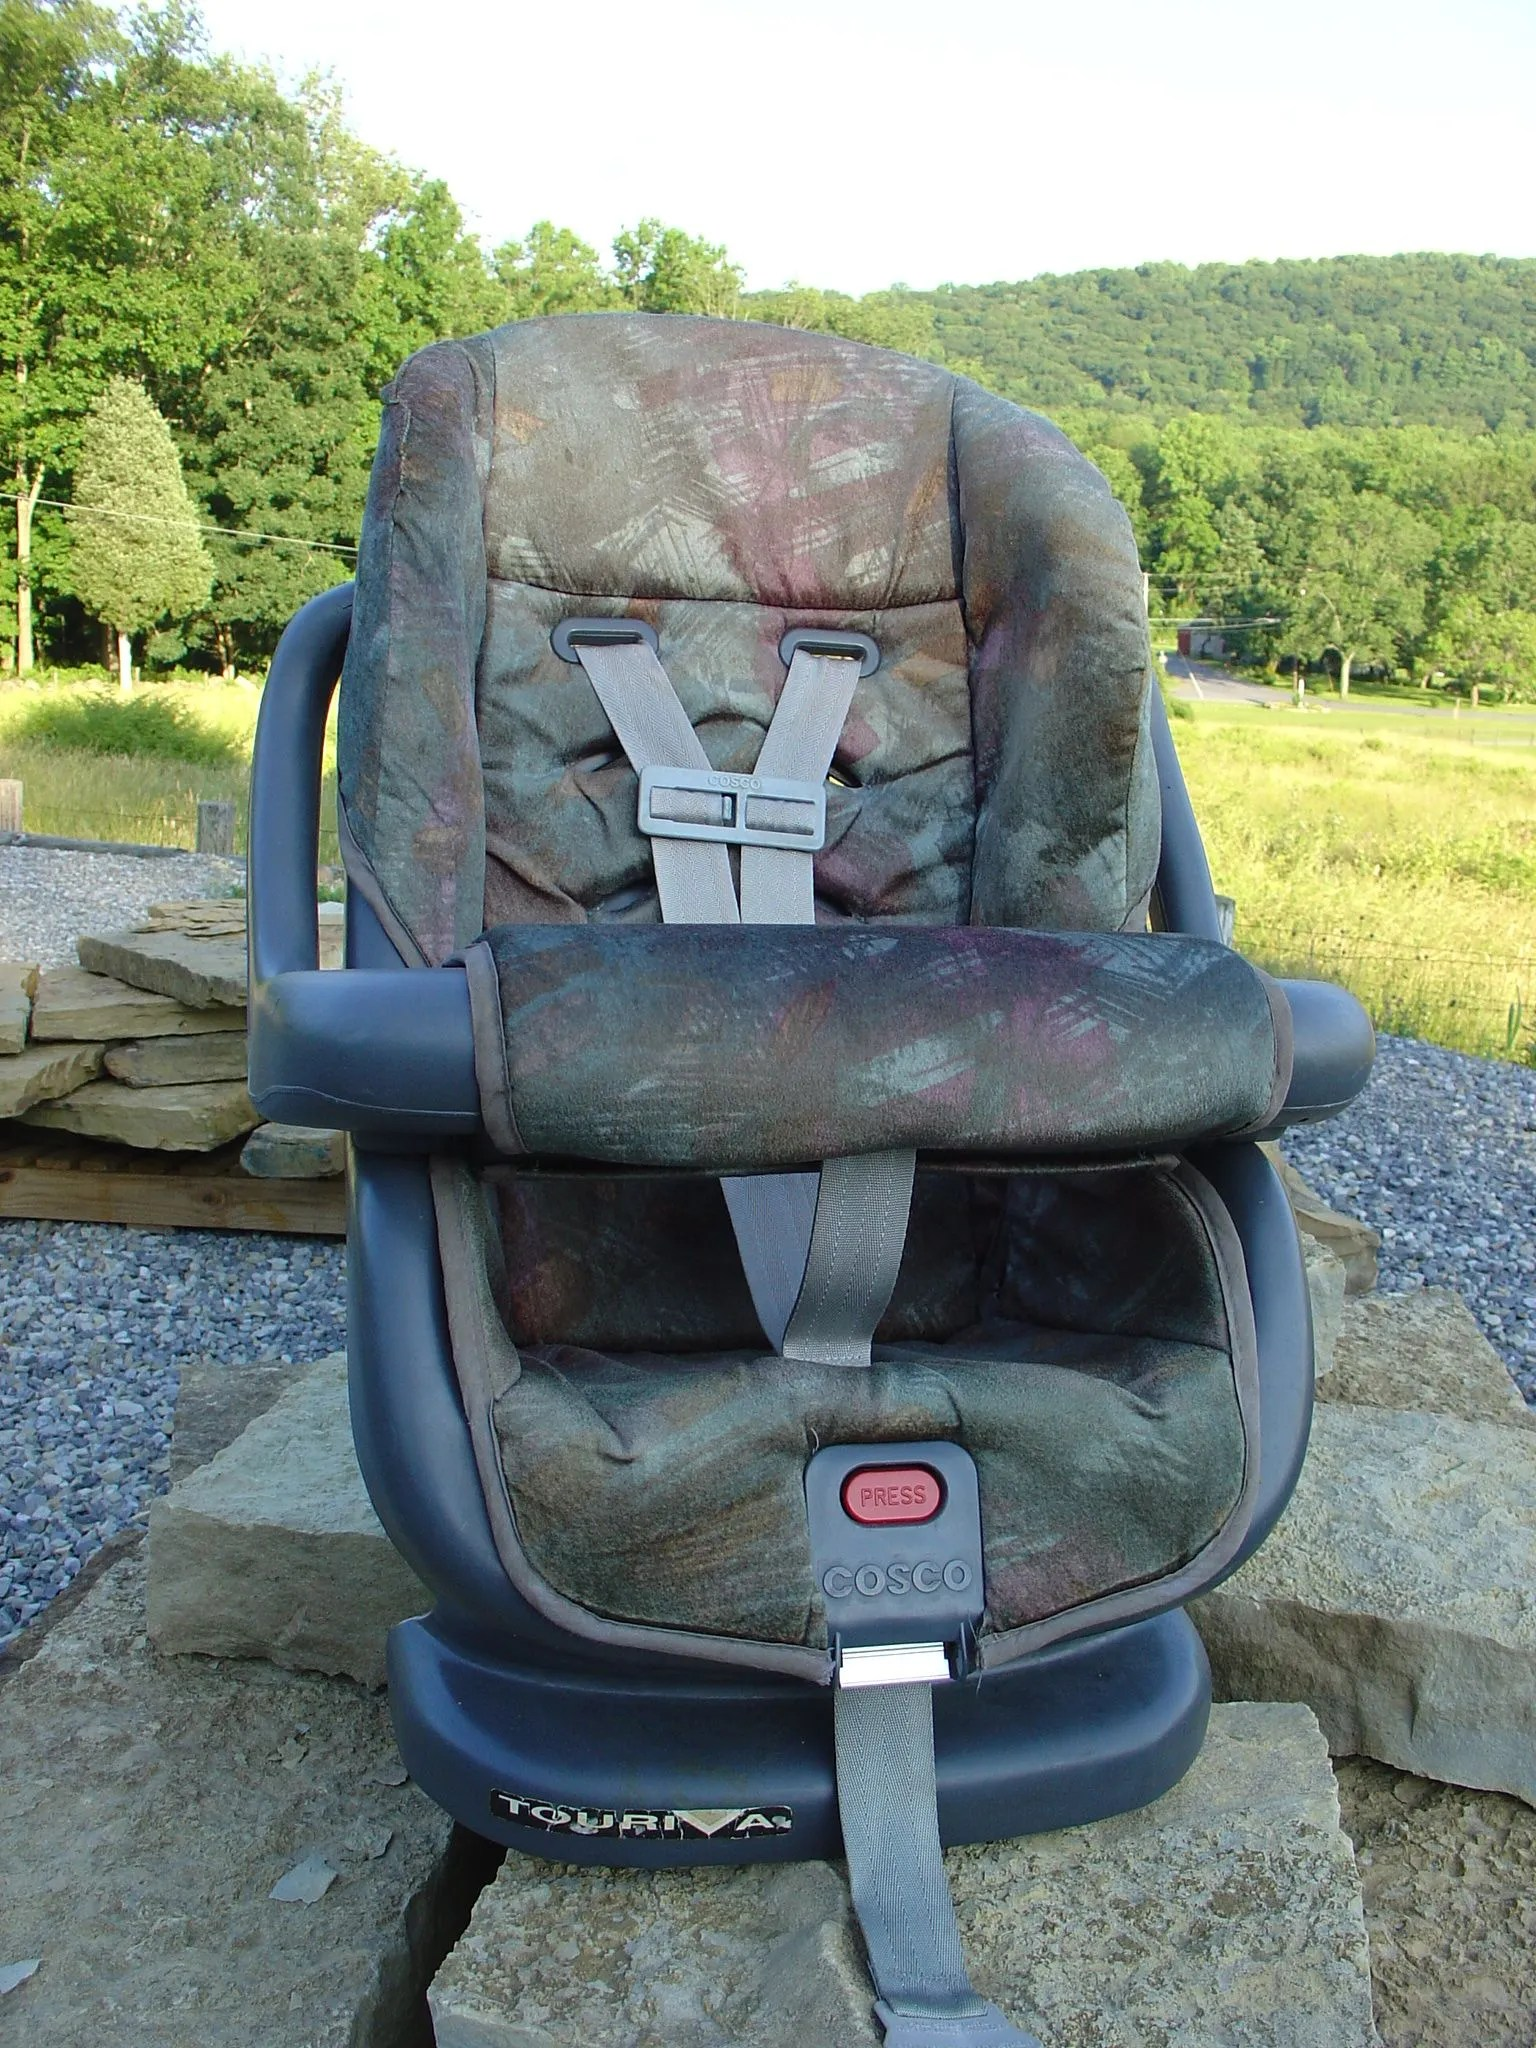 12 In 1985 Car Seat Safety Laws Were Passed